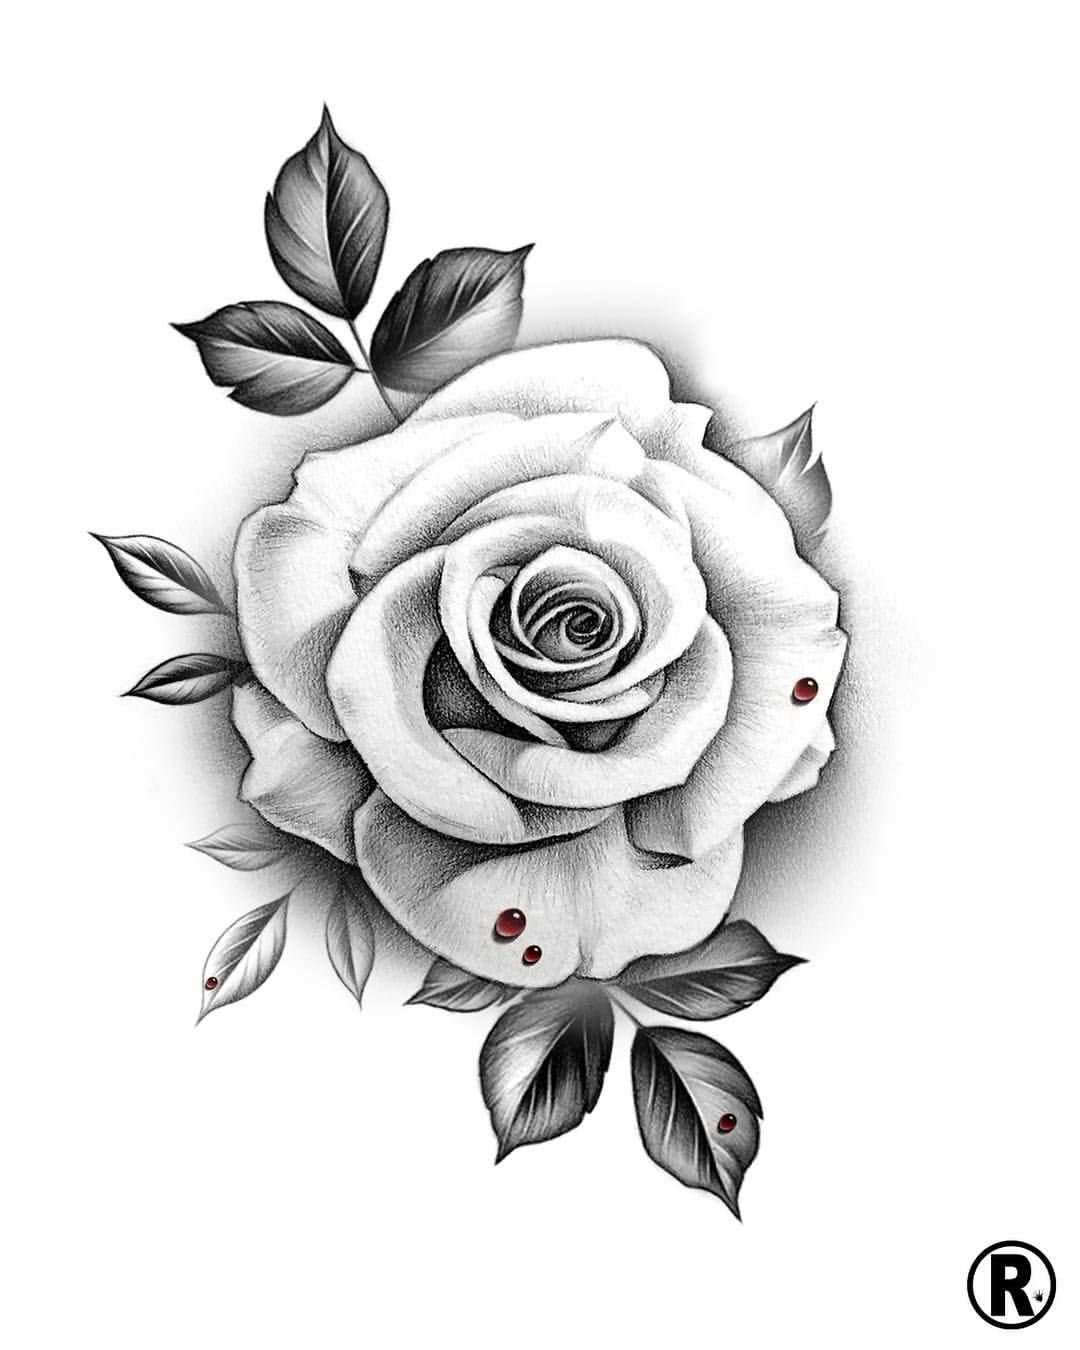 908 Likes 21 Comments West Culture Rickreyes On Instagram Who Needs A Rose Tattoo Dm Realistic Rose Tattoo Rose Drawing Tattoo Rose Flower Tattoos